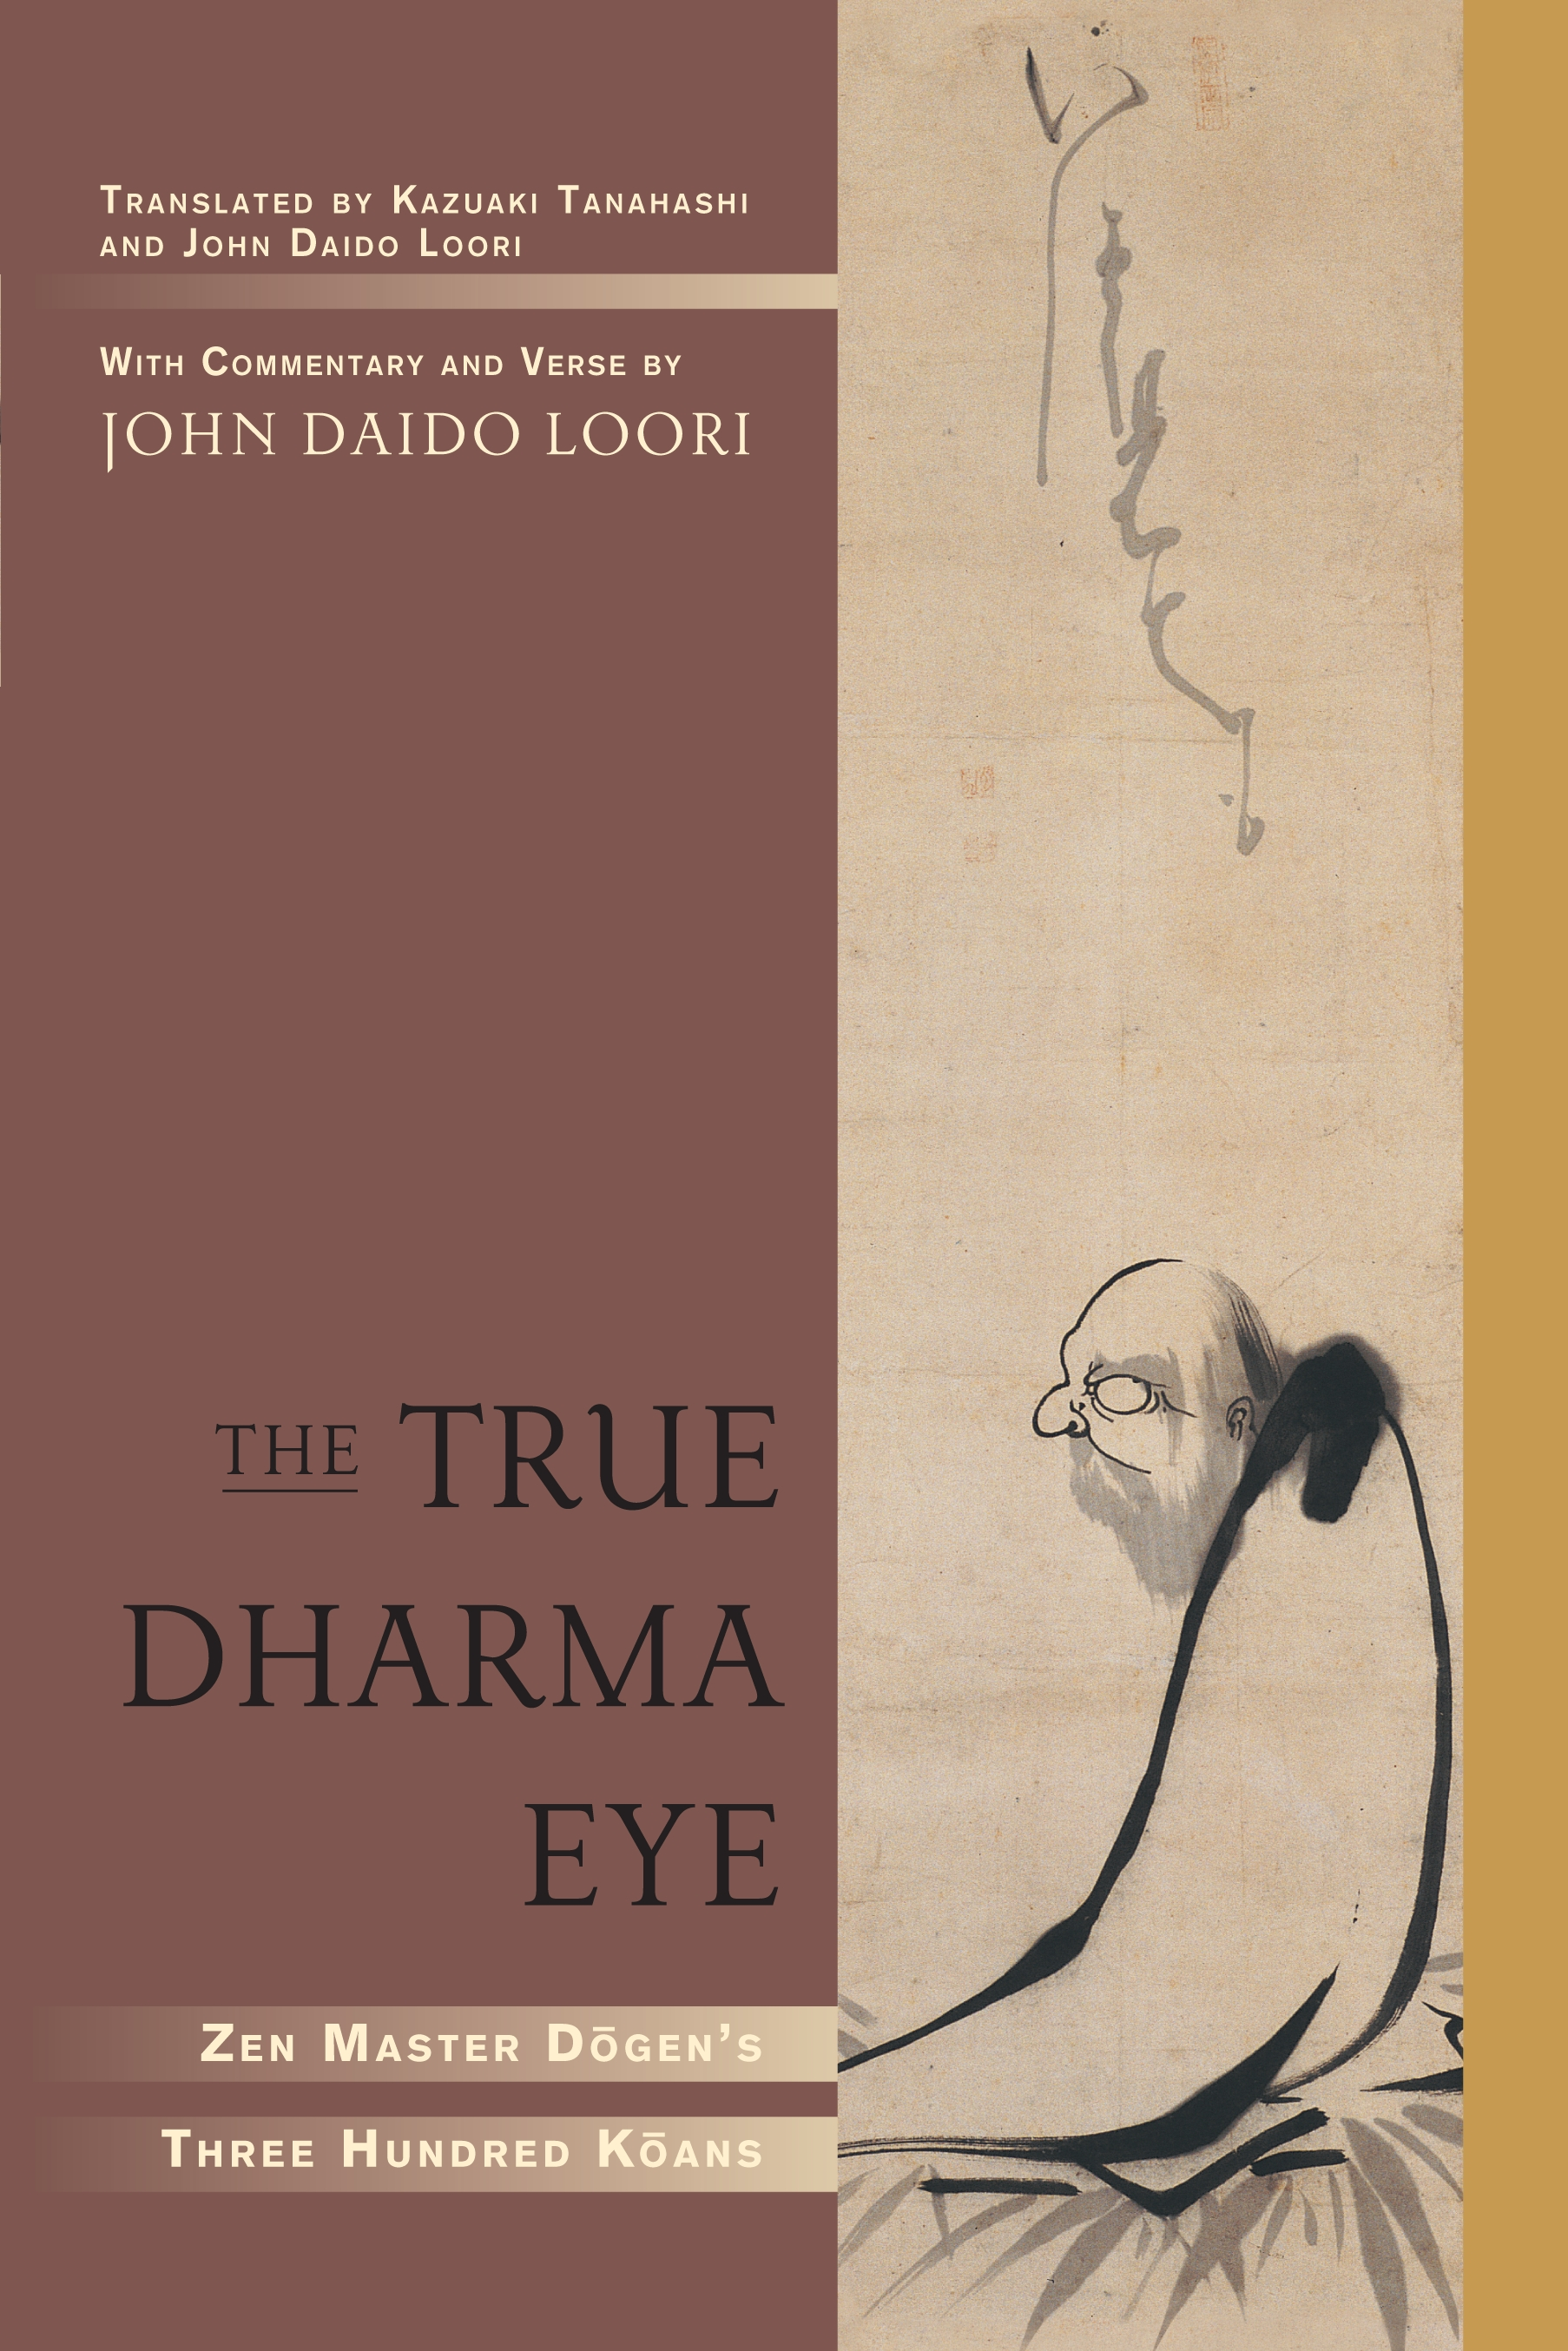 The True Dharma Eye